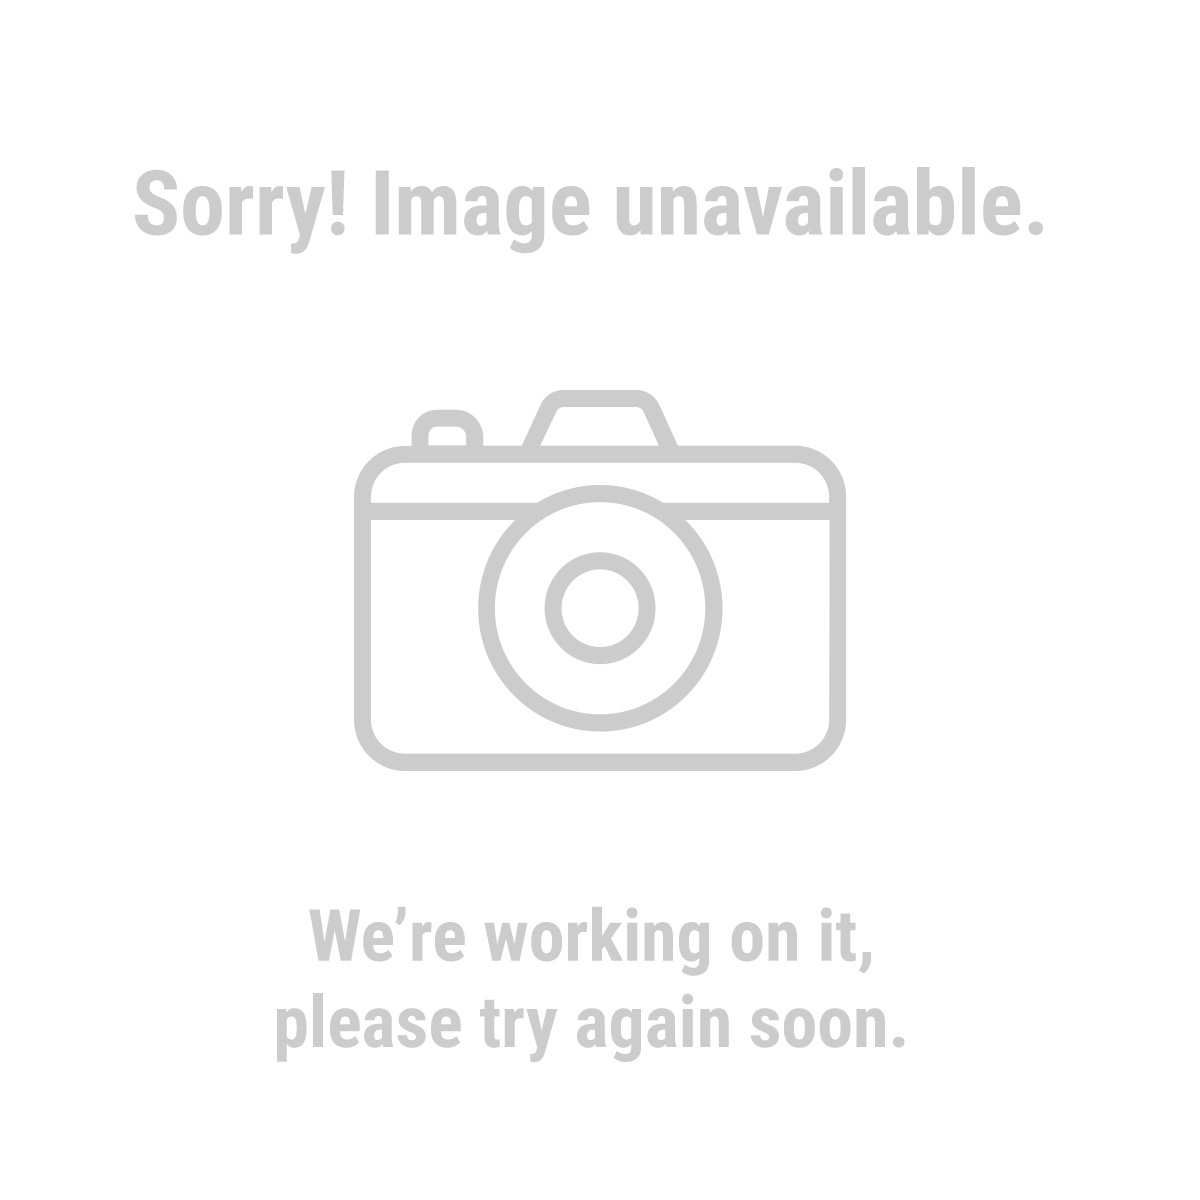 Central Machinery 33686 1-1/2 Horsepower Heavy Duty Milling/Drilling Machine